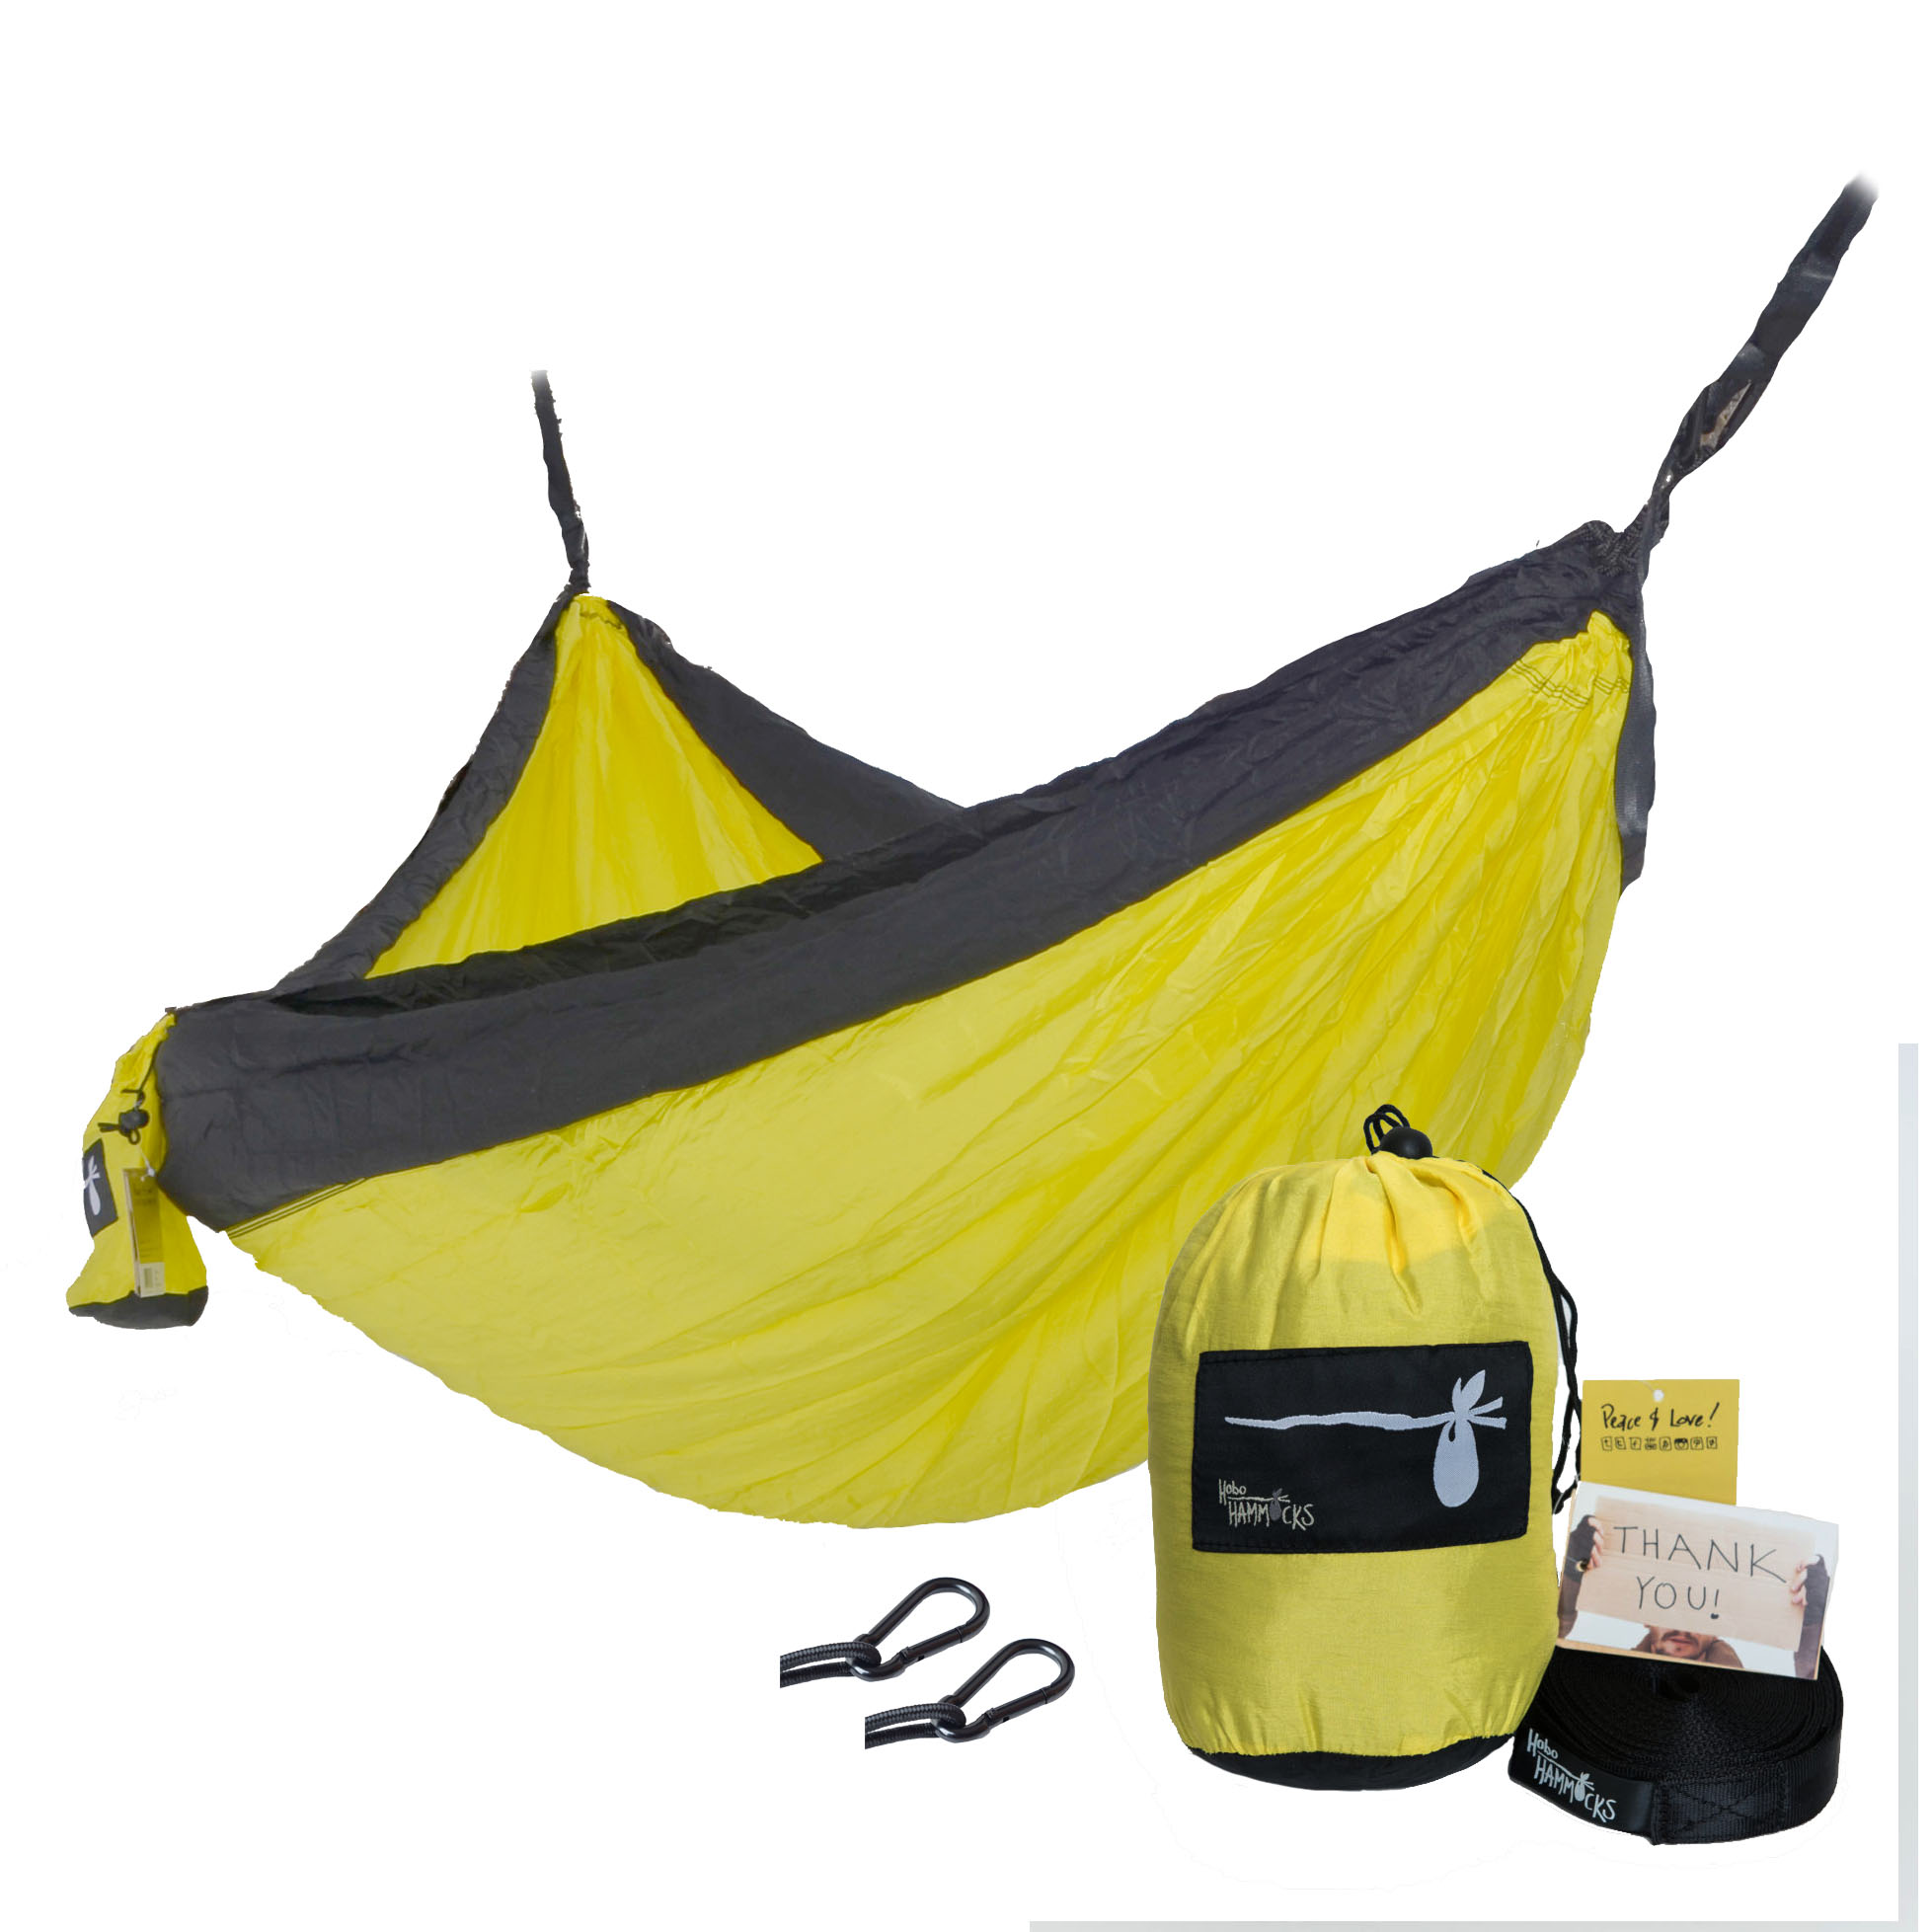 Medium image of  double  special edition  u2013 yellow banana hammock